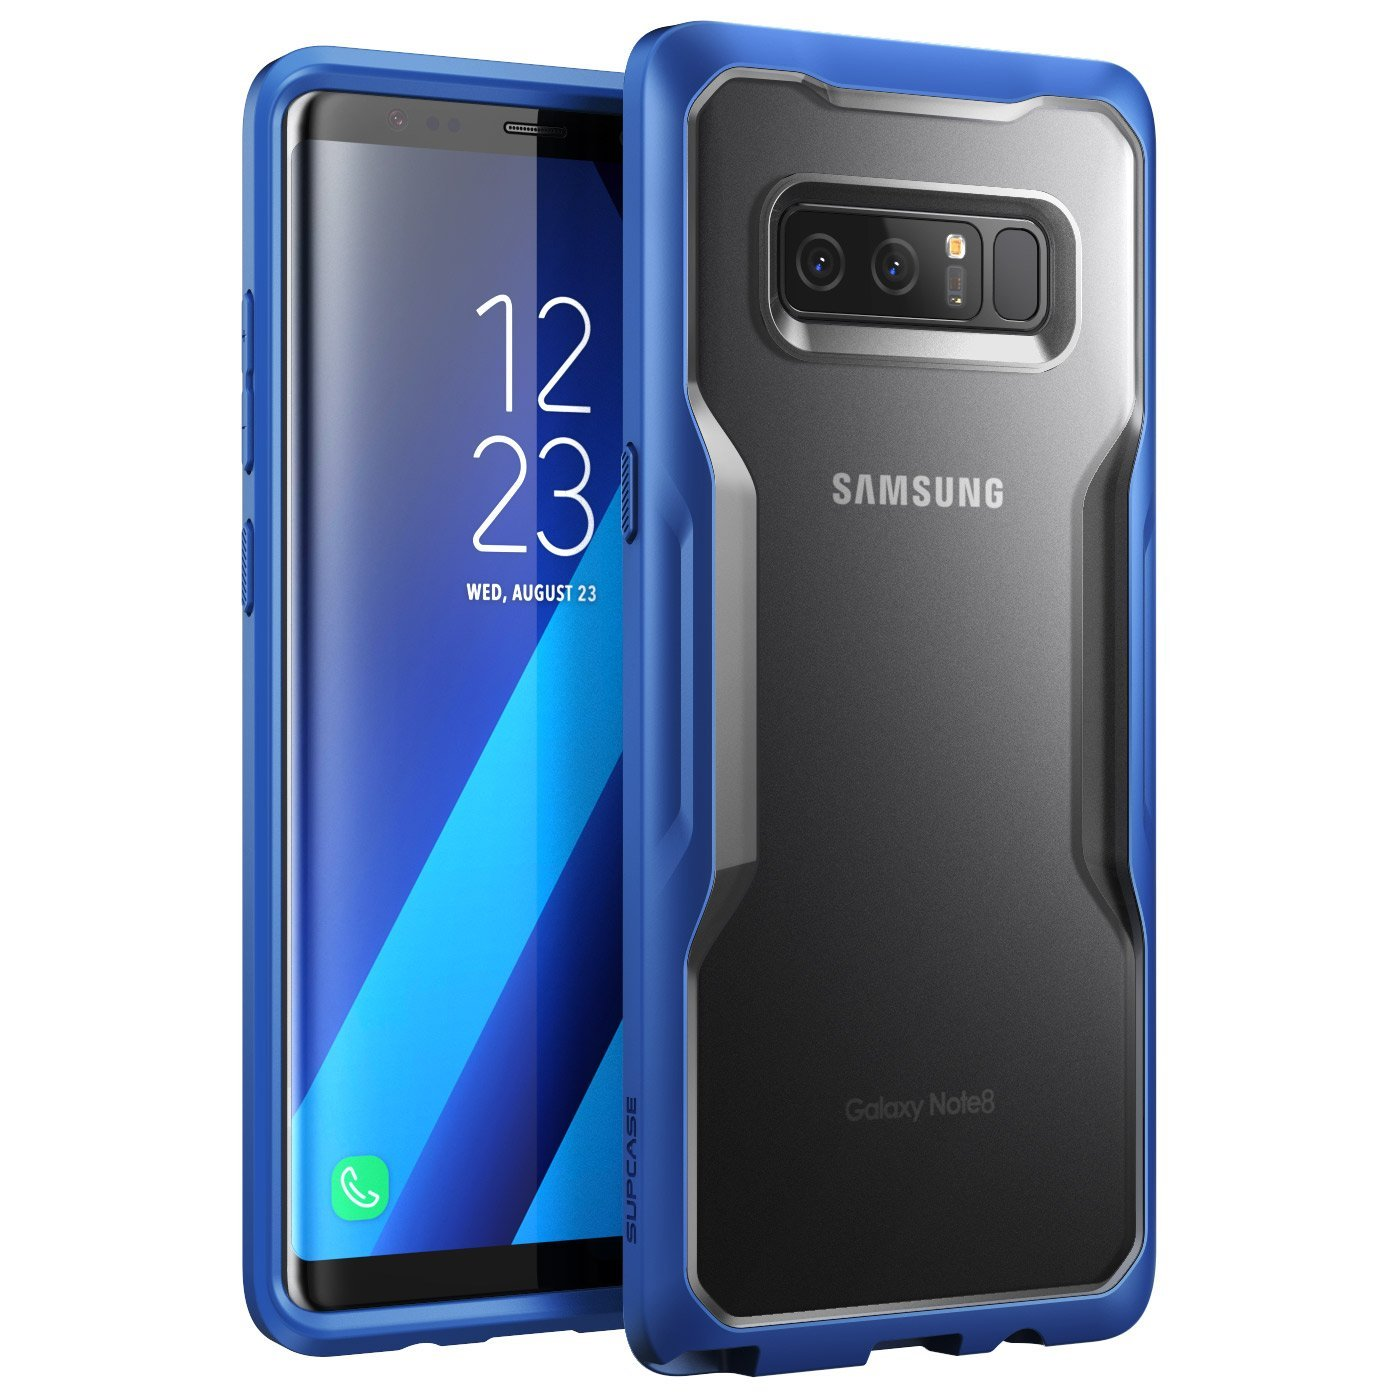 SUPCASE Samsung Galaxy Note 8 Case Unicorn Beetle Series Premium Hybrid Protective Clear Case 2017 Release (Frost/Navy)